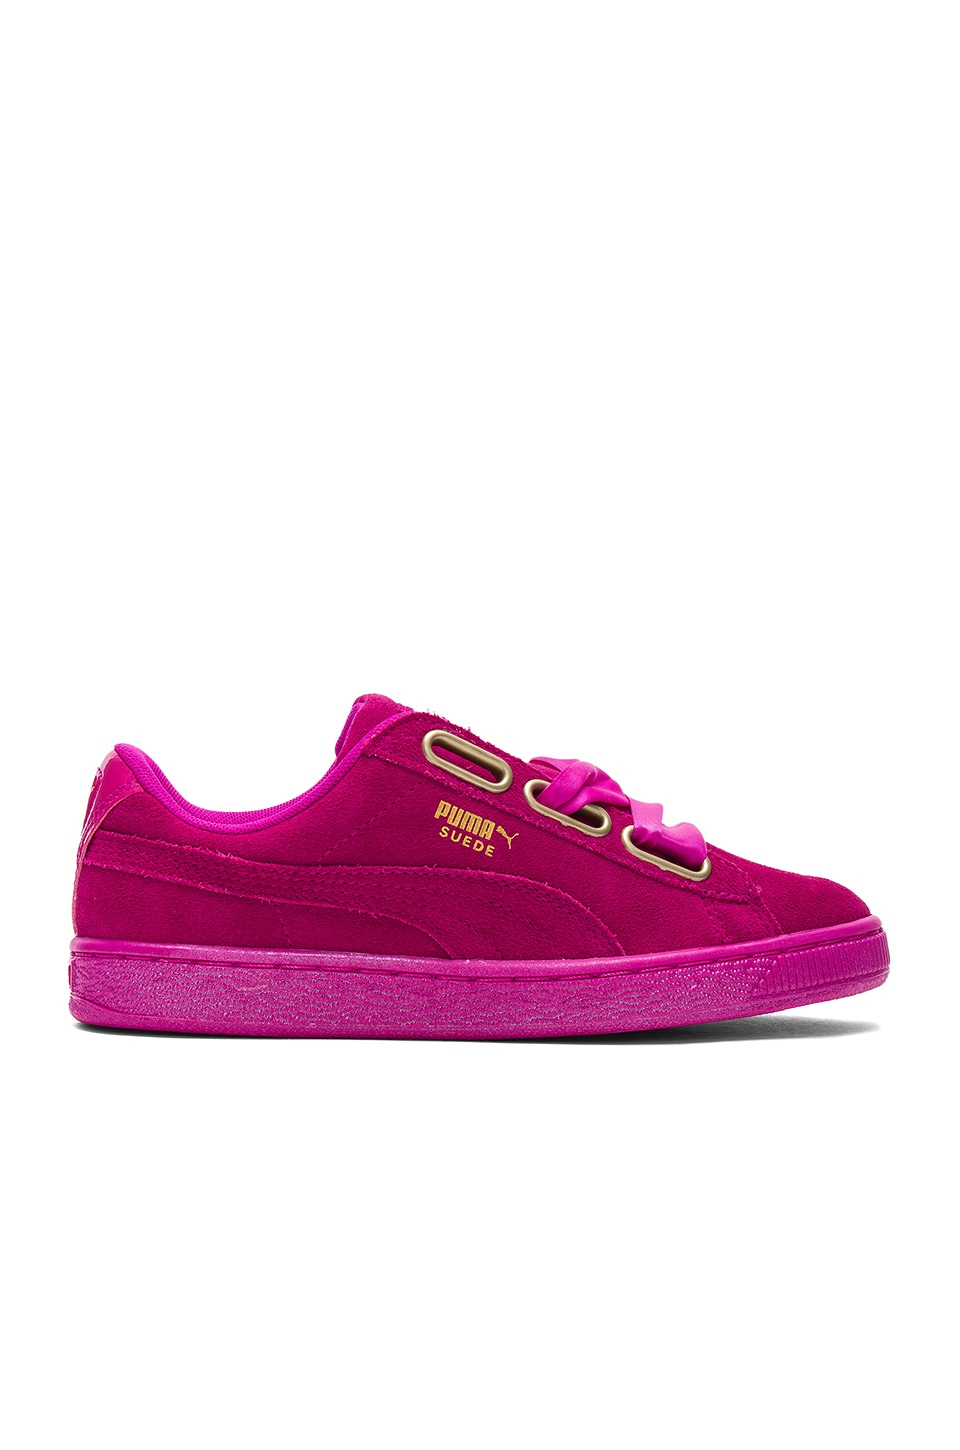 Empower Angry Expectation  Puma Suede Heart Satin Sneaker in Ultra Magenta | REVOLVE